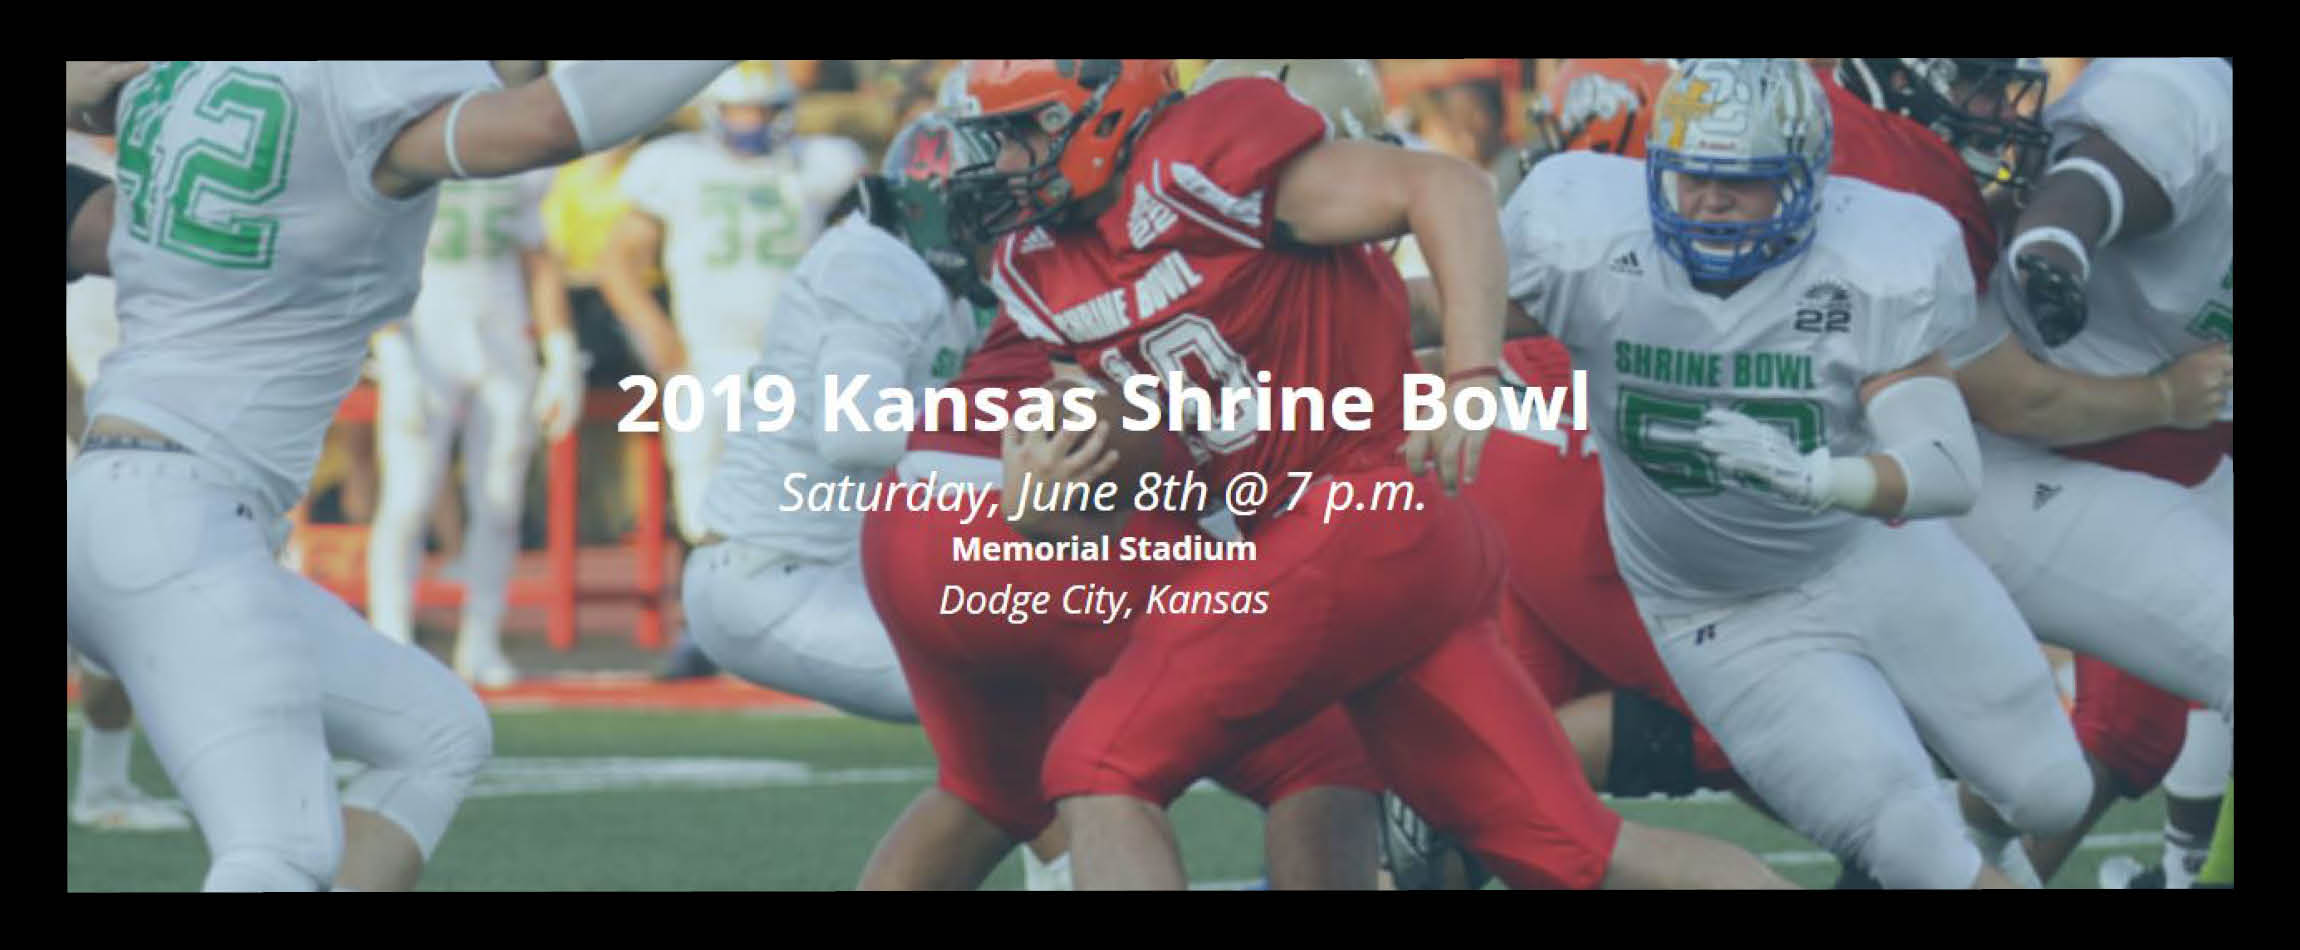 Shrine Bowl 2019